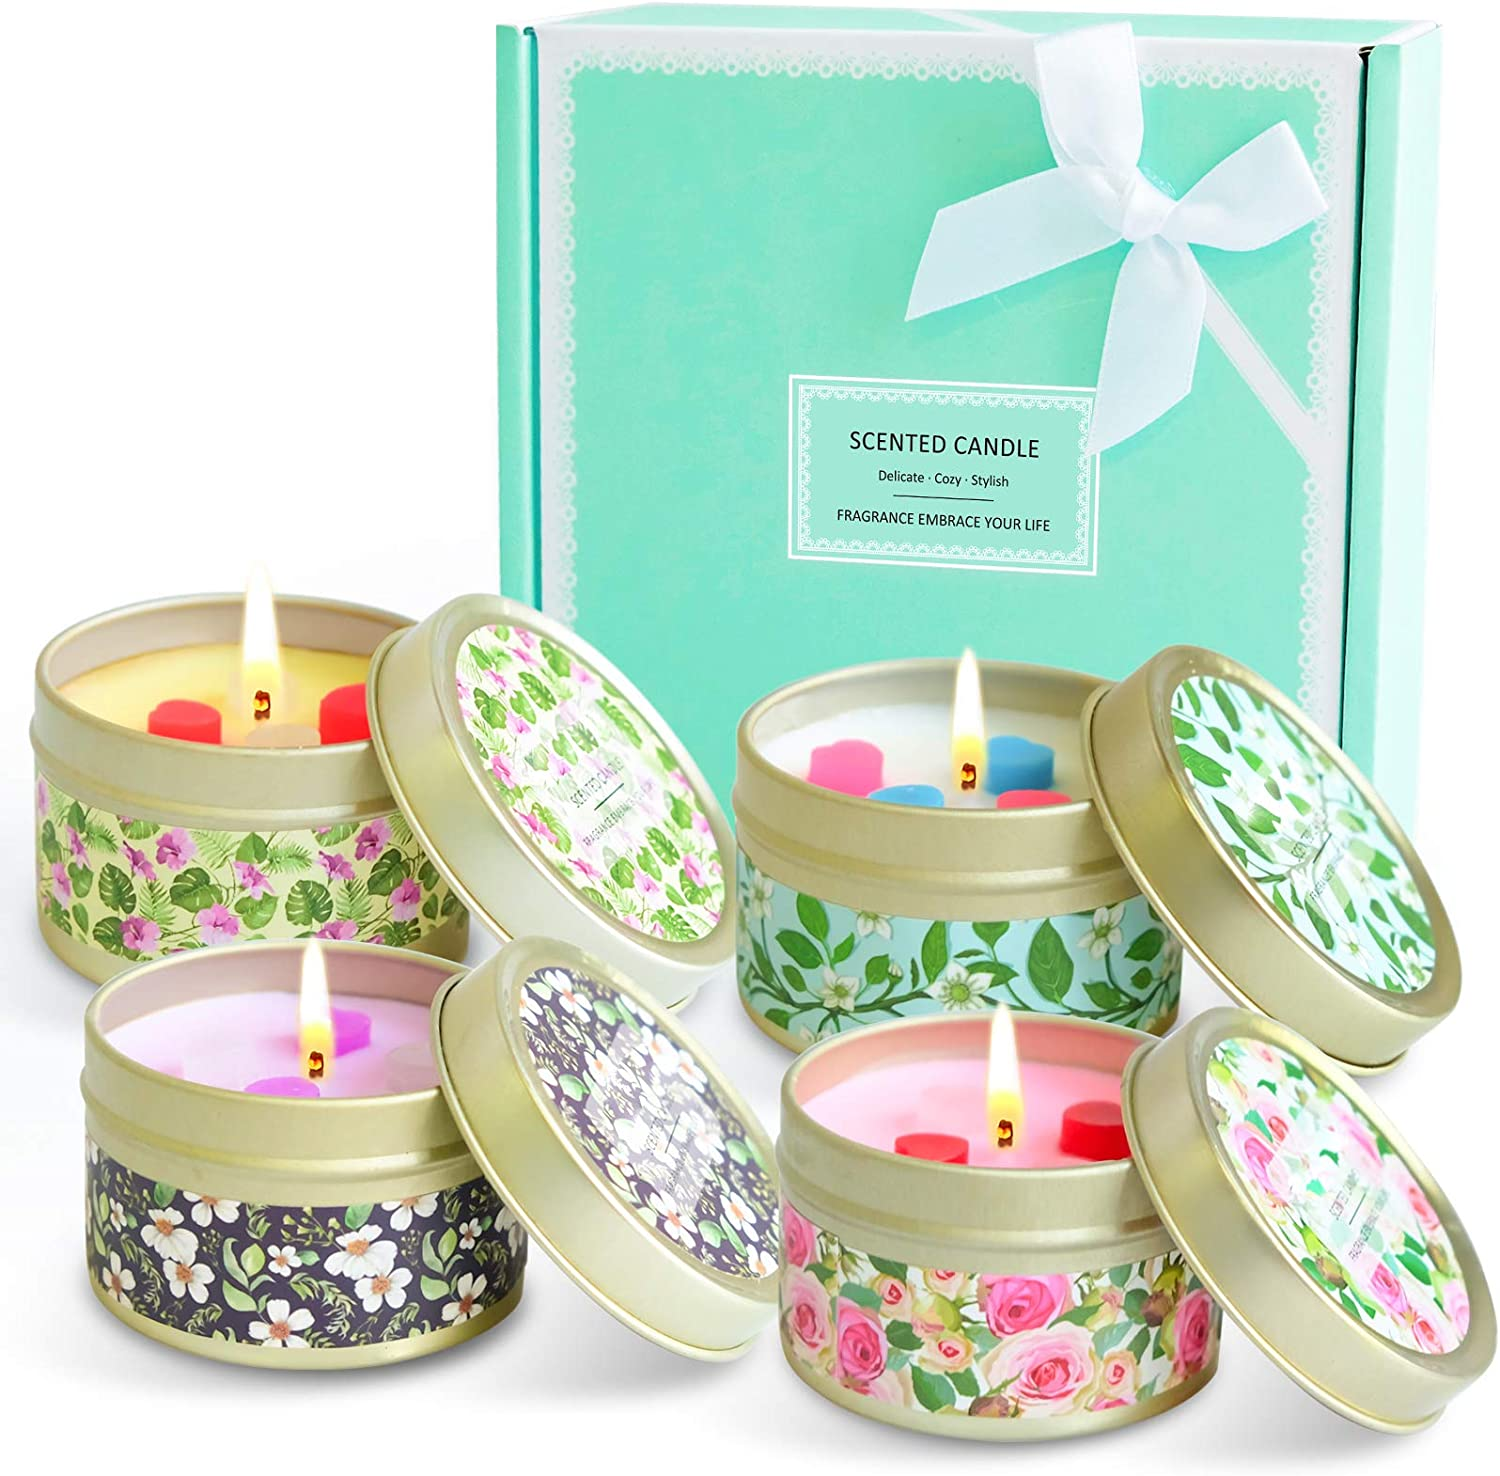 Floral Fragrance of Lavender, Jasmine, Rose and Vanilla Mothers Day LASENTEUR Scented Candles Aromatherapy Candles Natural Soy Wax Fragrance Home Fragrance Gifts for Birthday Wedding